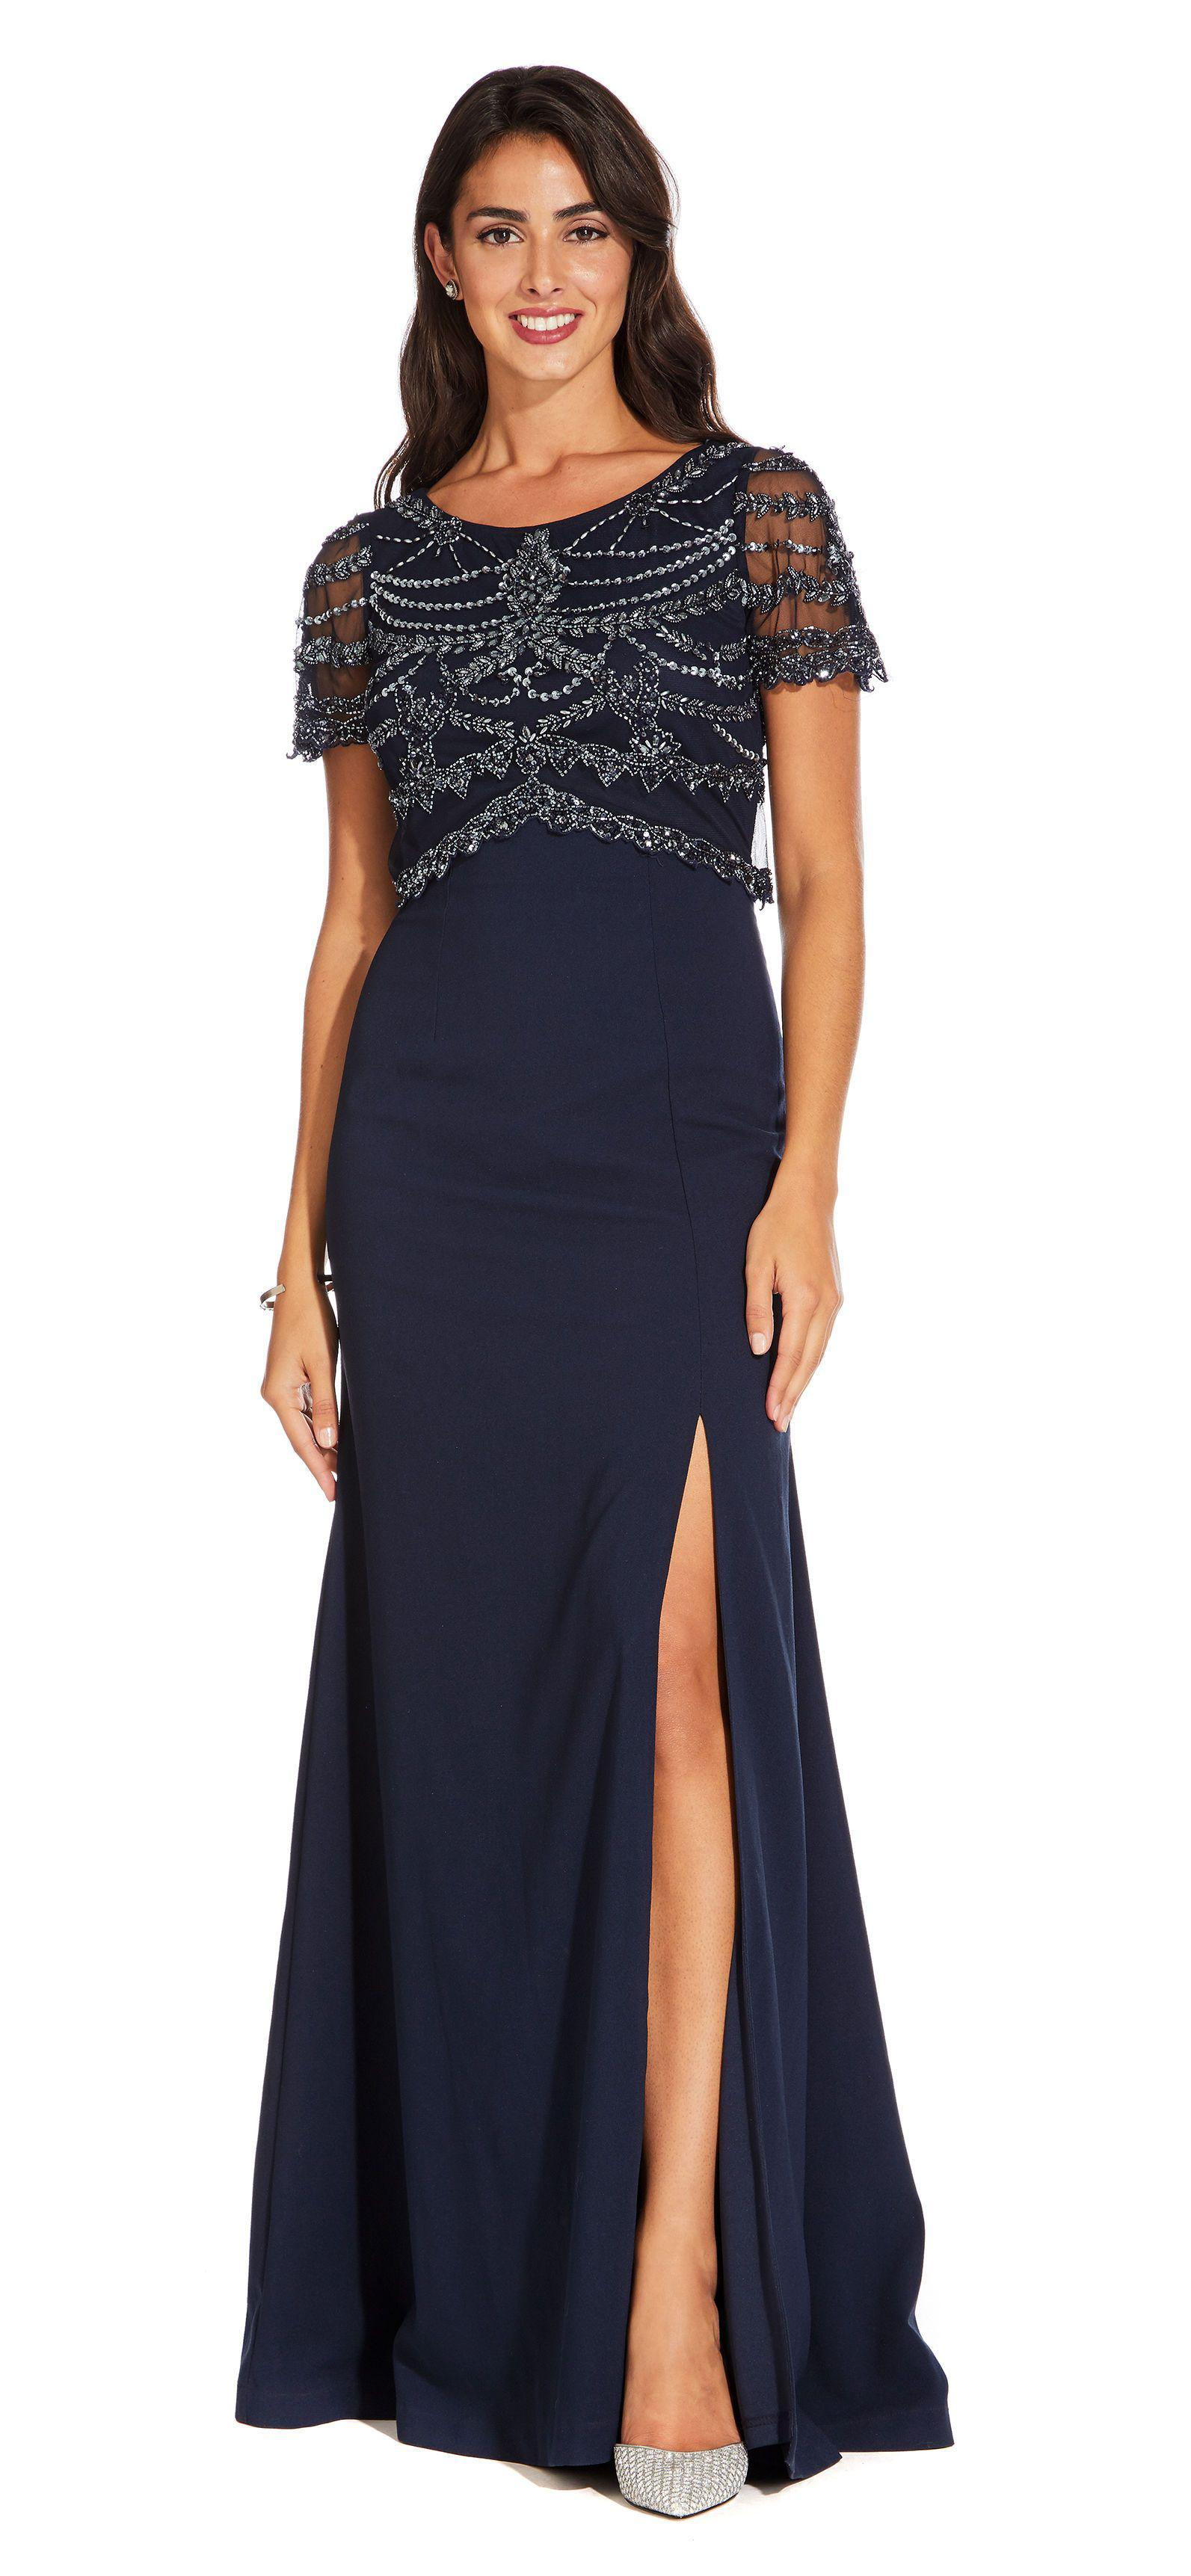 b793ffc7fb4a Adrianna Papell. Women's Blue Short Sleeve Crepe Mermaid Gown With Beaded  Popover Bodice